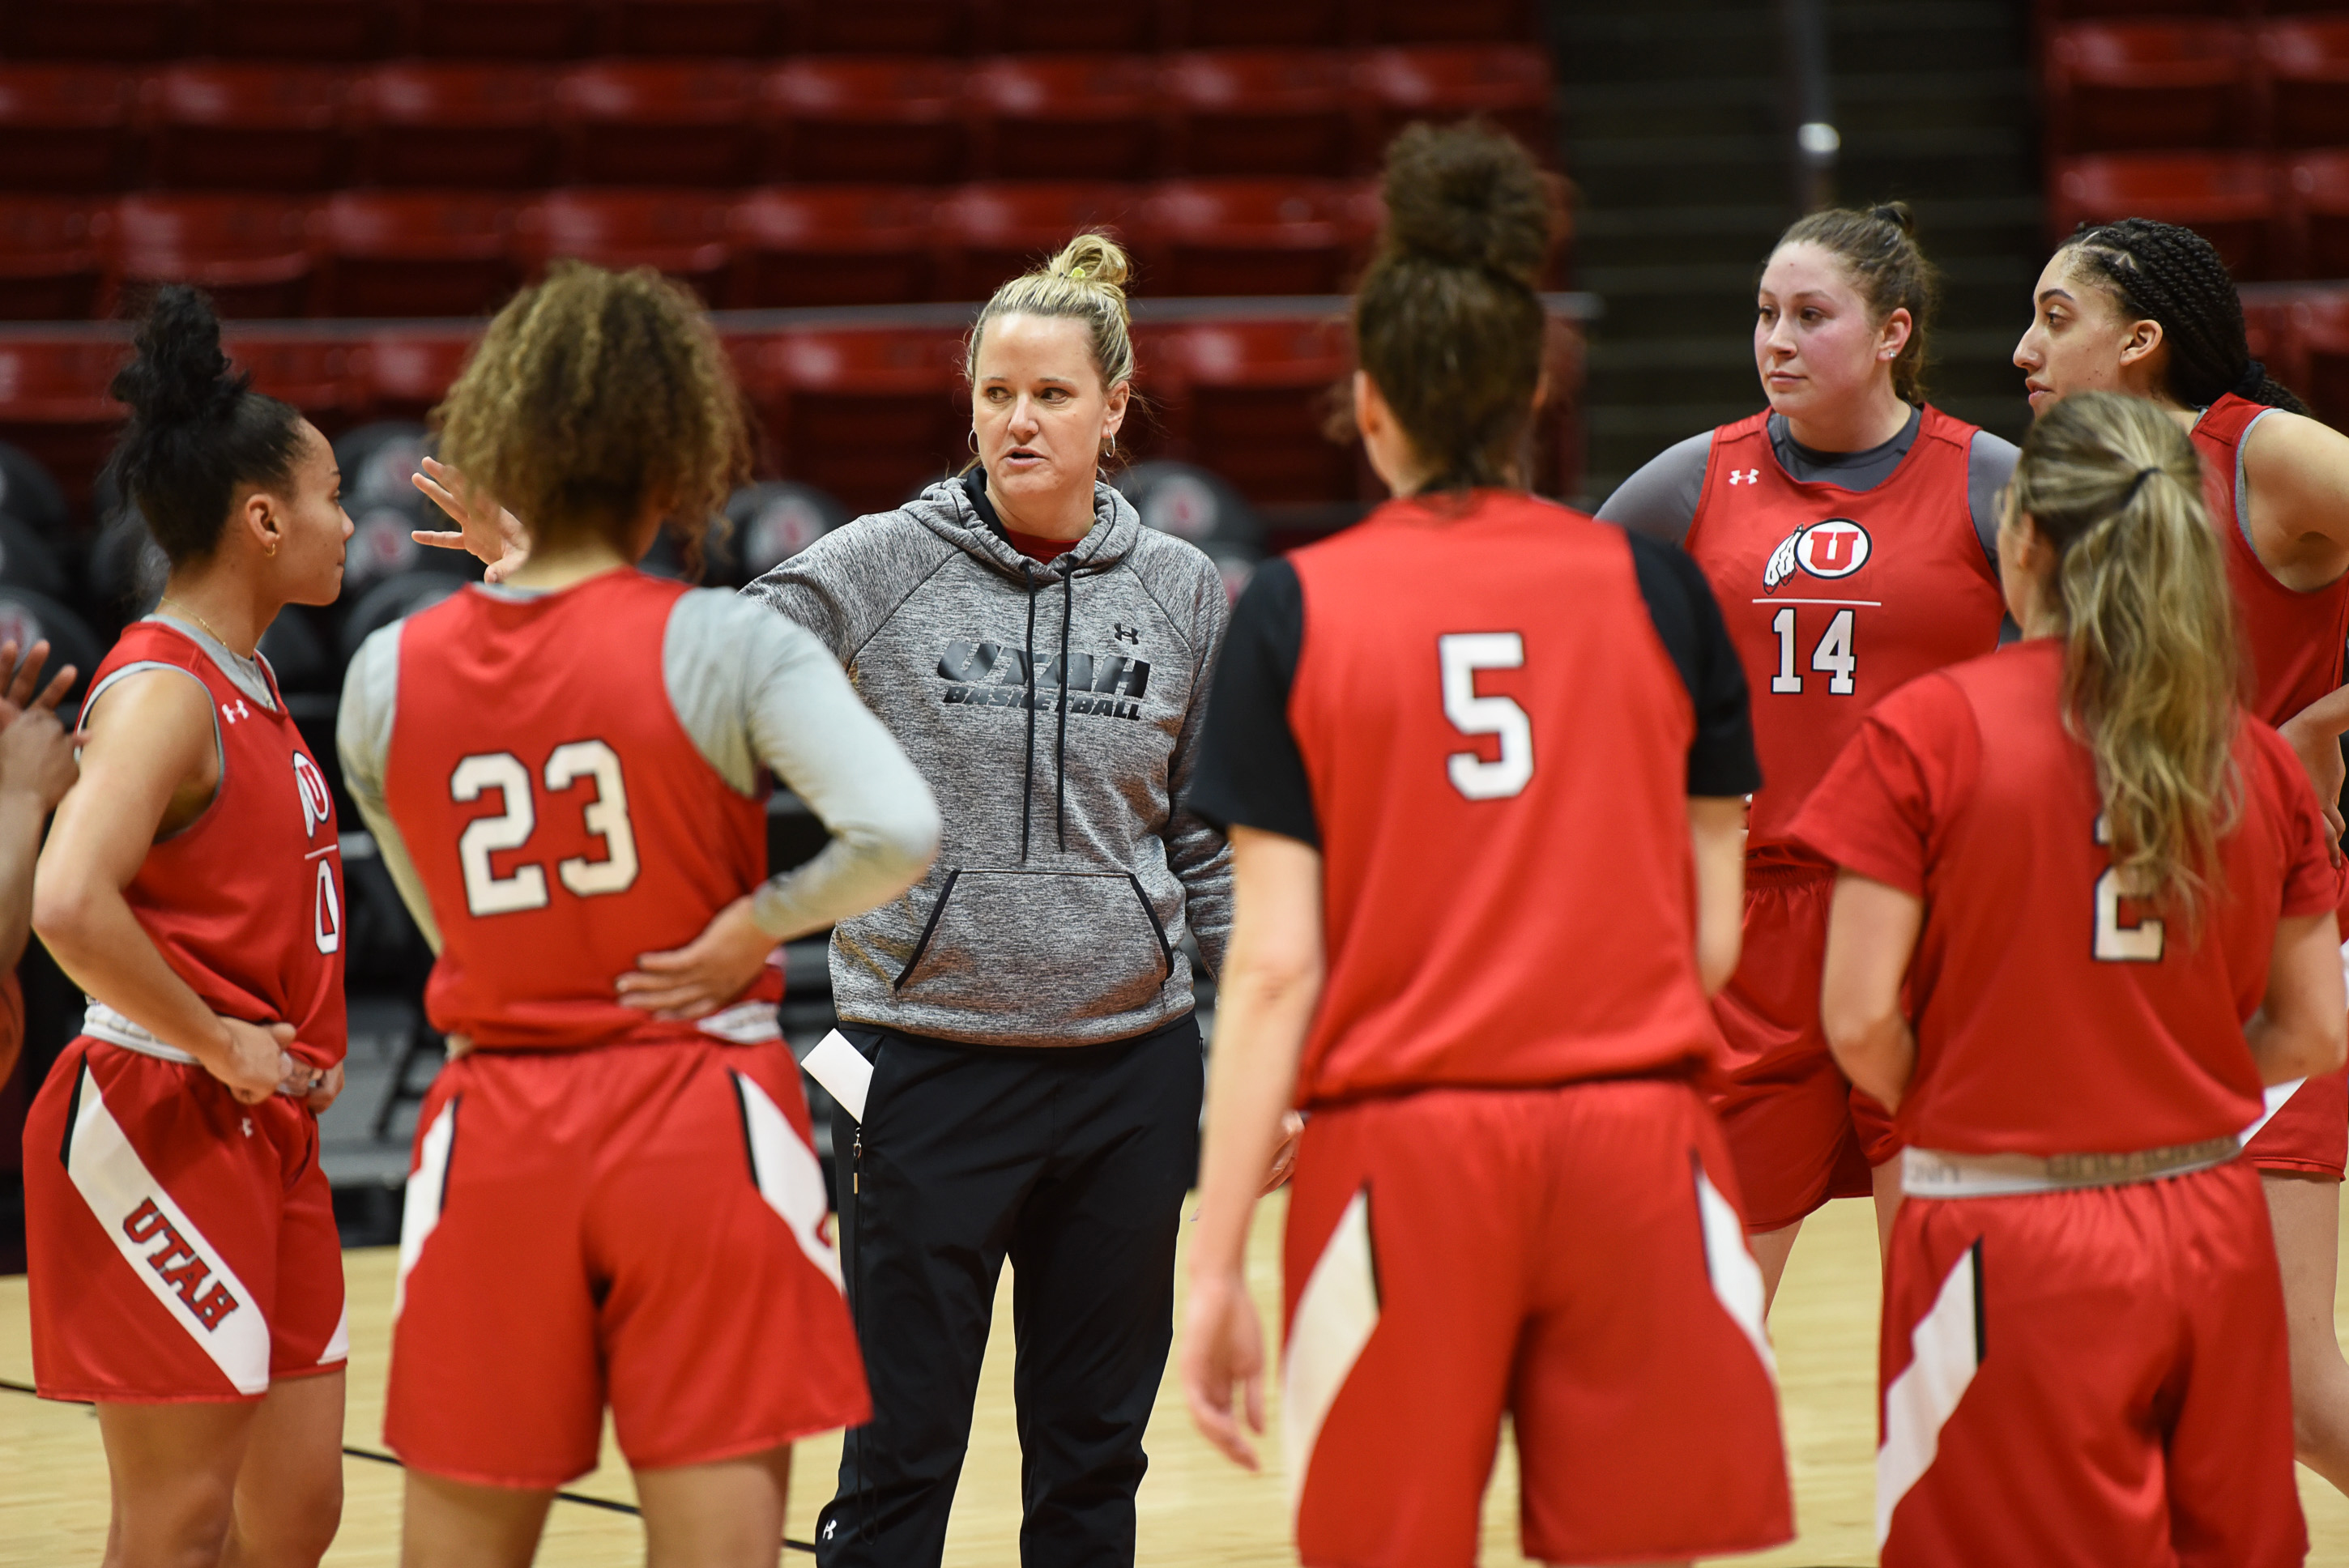 Monson: Utah women's basketball coach Lynne Roberts likes to win, but she